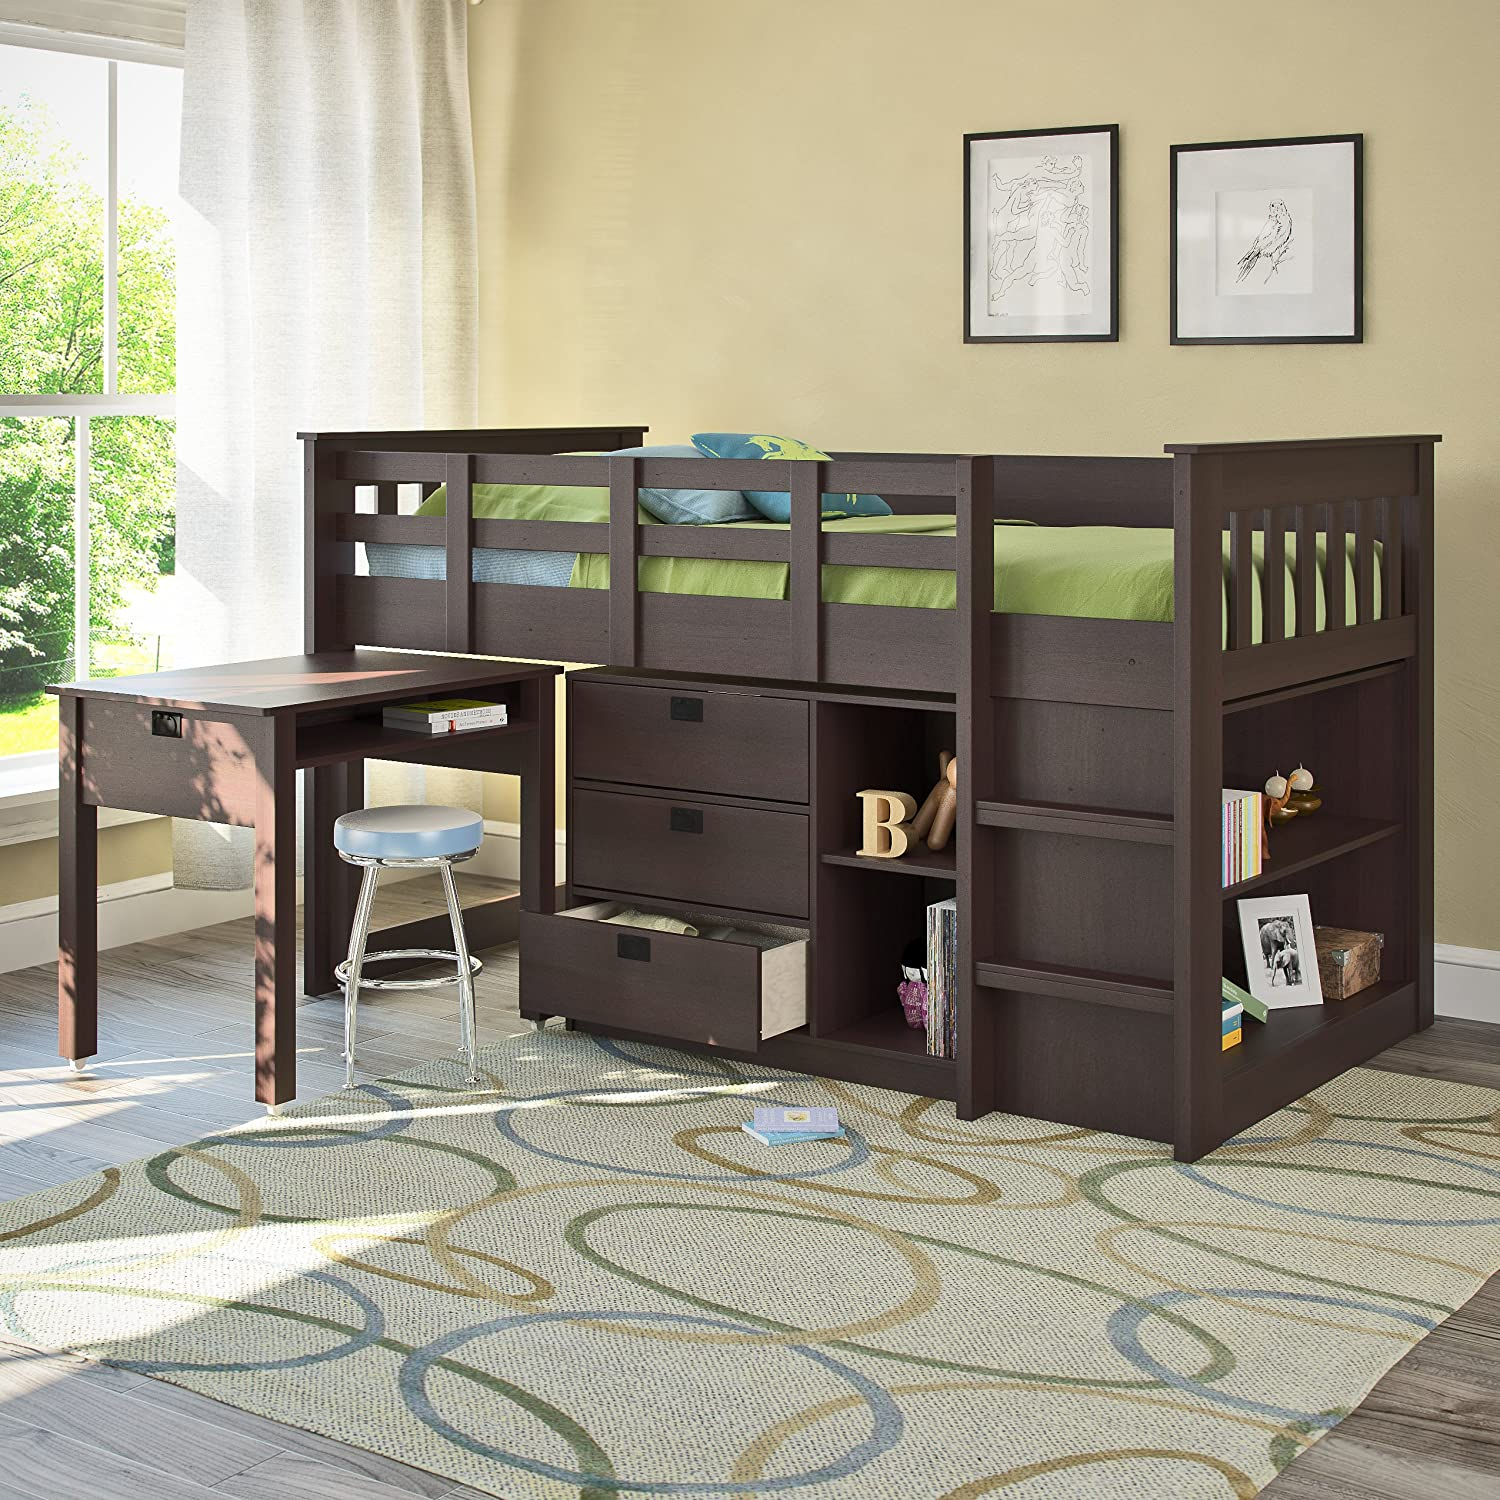 Design Bed With Desk amazon com corliving bmg 370 b madison loft bed with desk and storage singletwin rich espresso kitchen dining